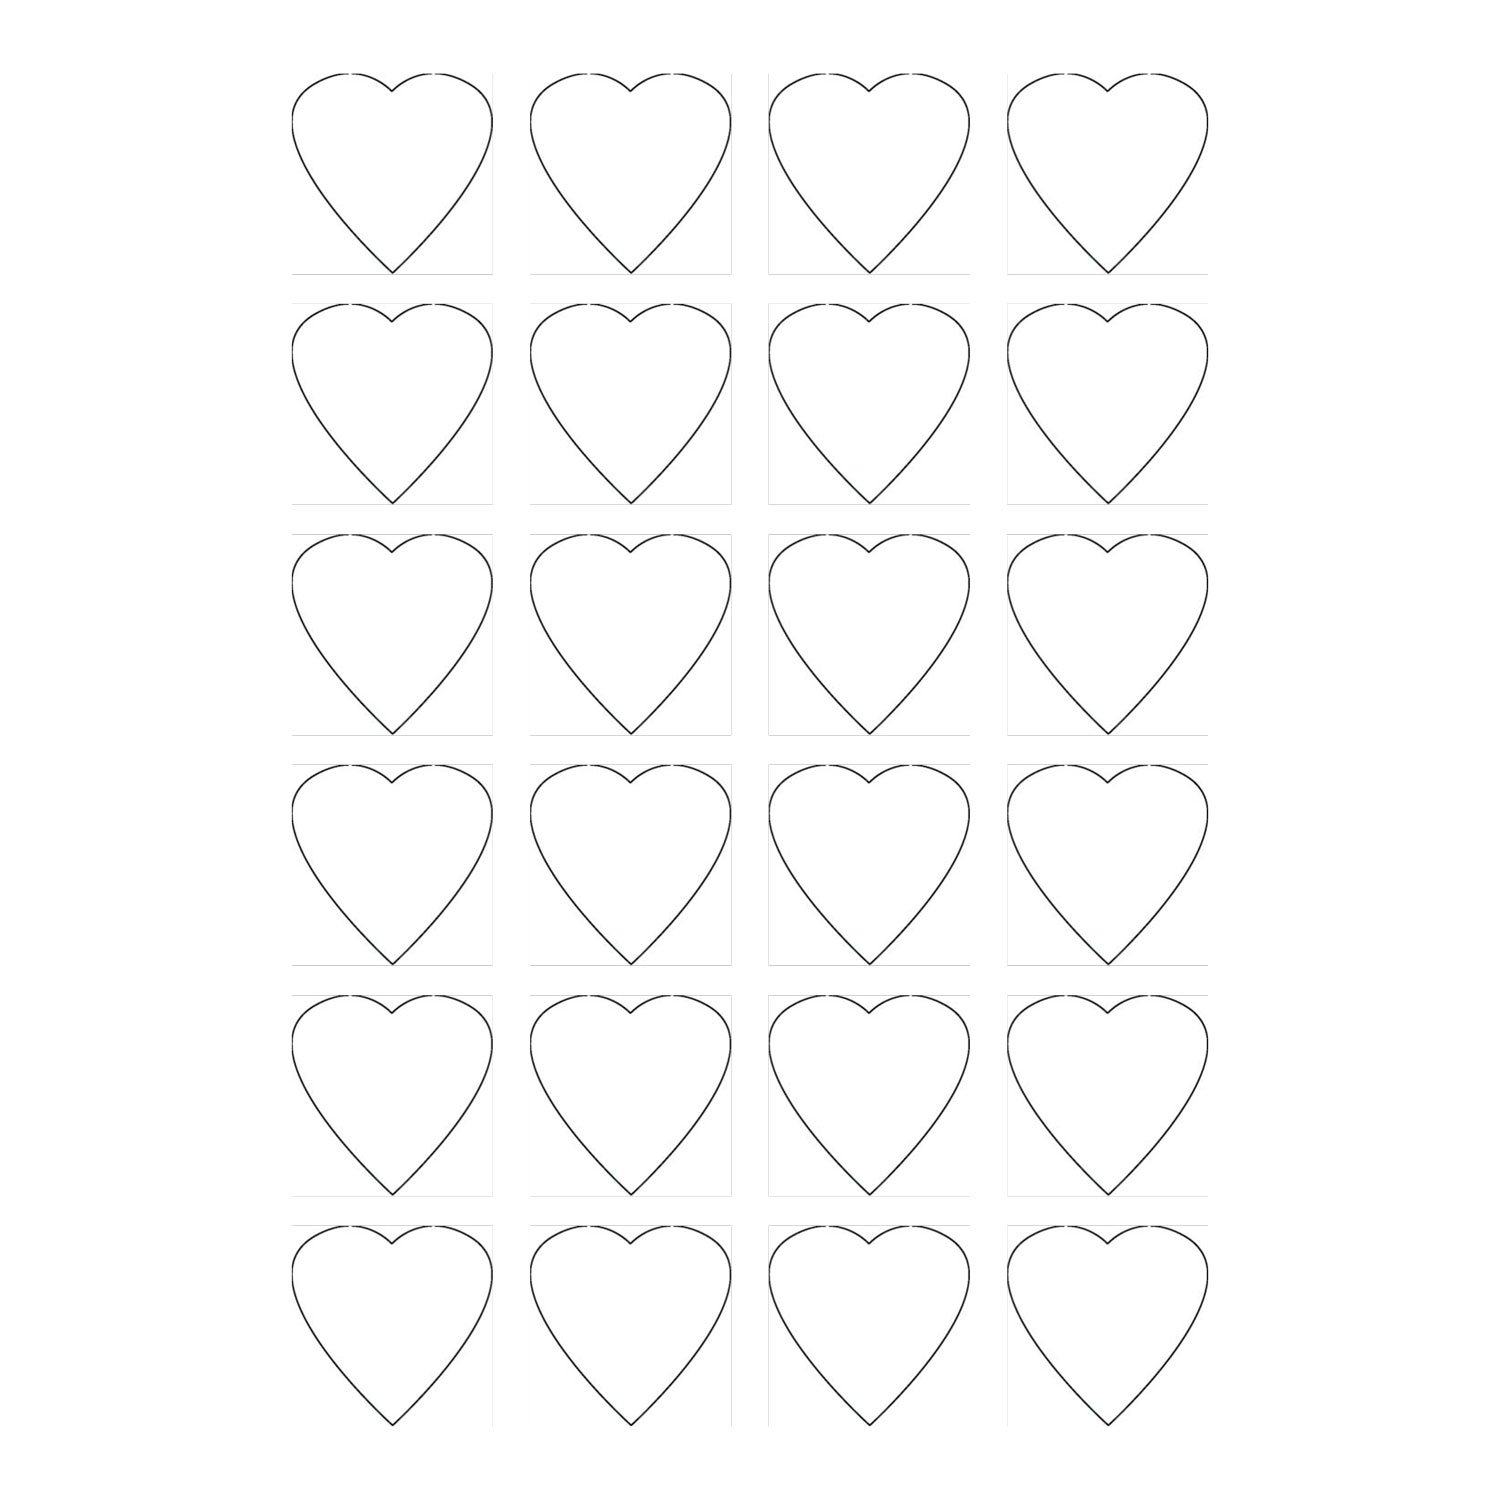 120 Printable Cardstock Small Heart Hang Tags, Personalize and Custom Tags, No Perforation Marks, 1.5 inches, White